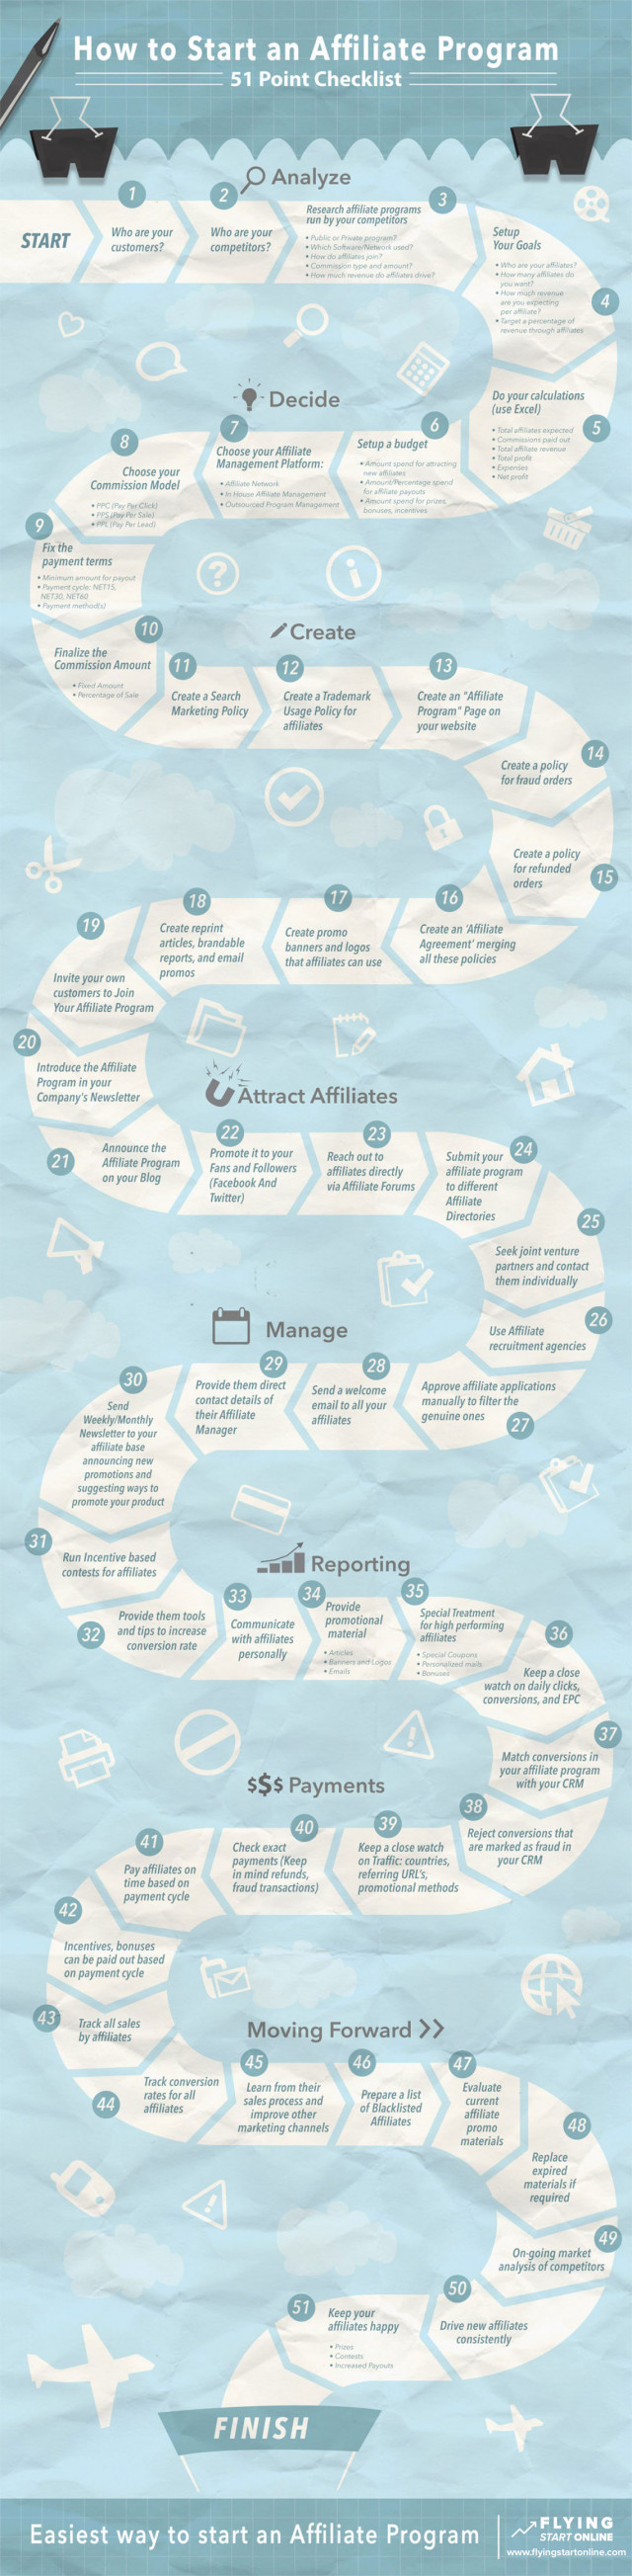 Affiliate Marketing: Guide to Starting An Affiliate Program [Infographic]